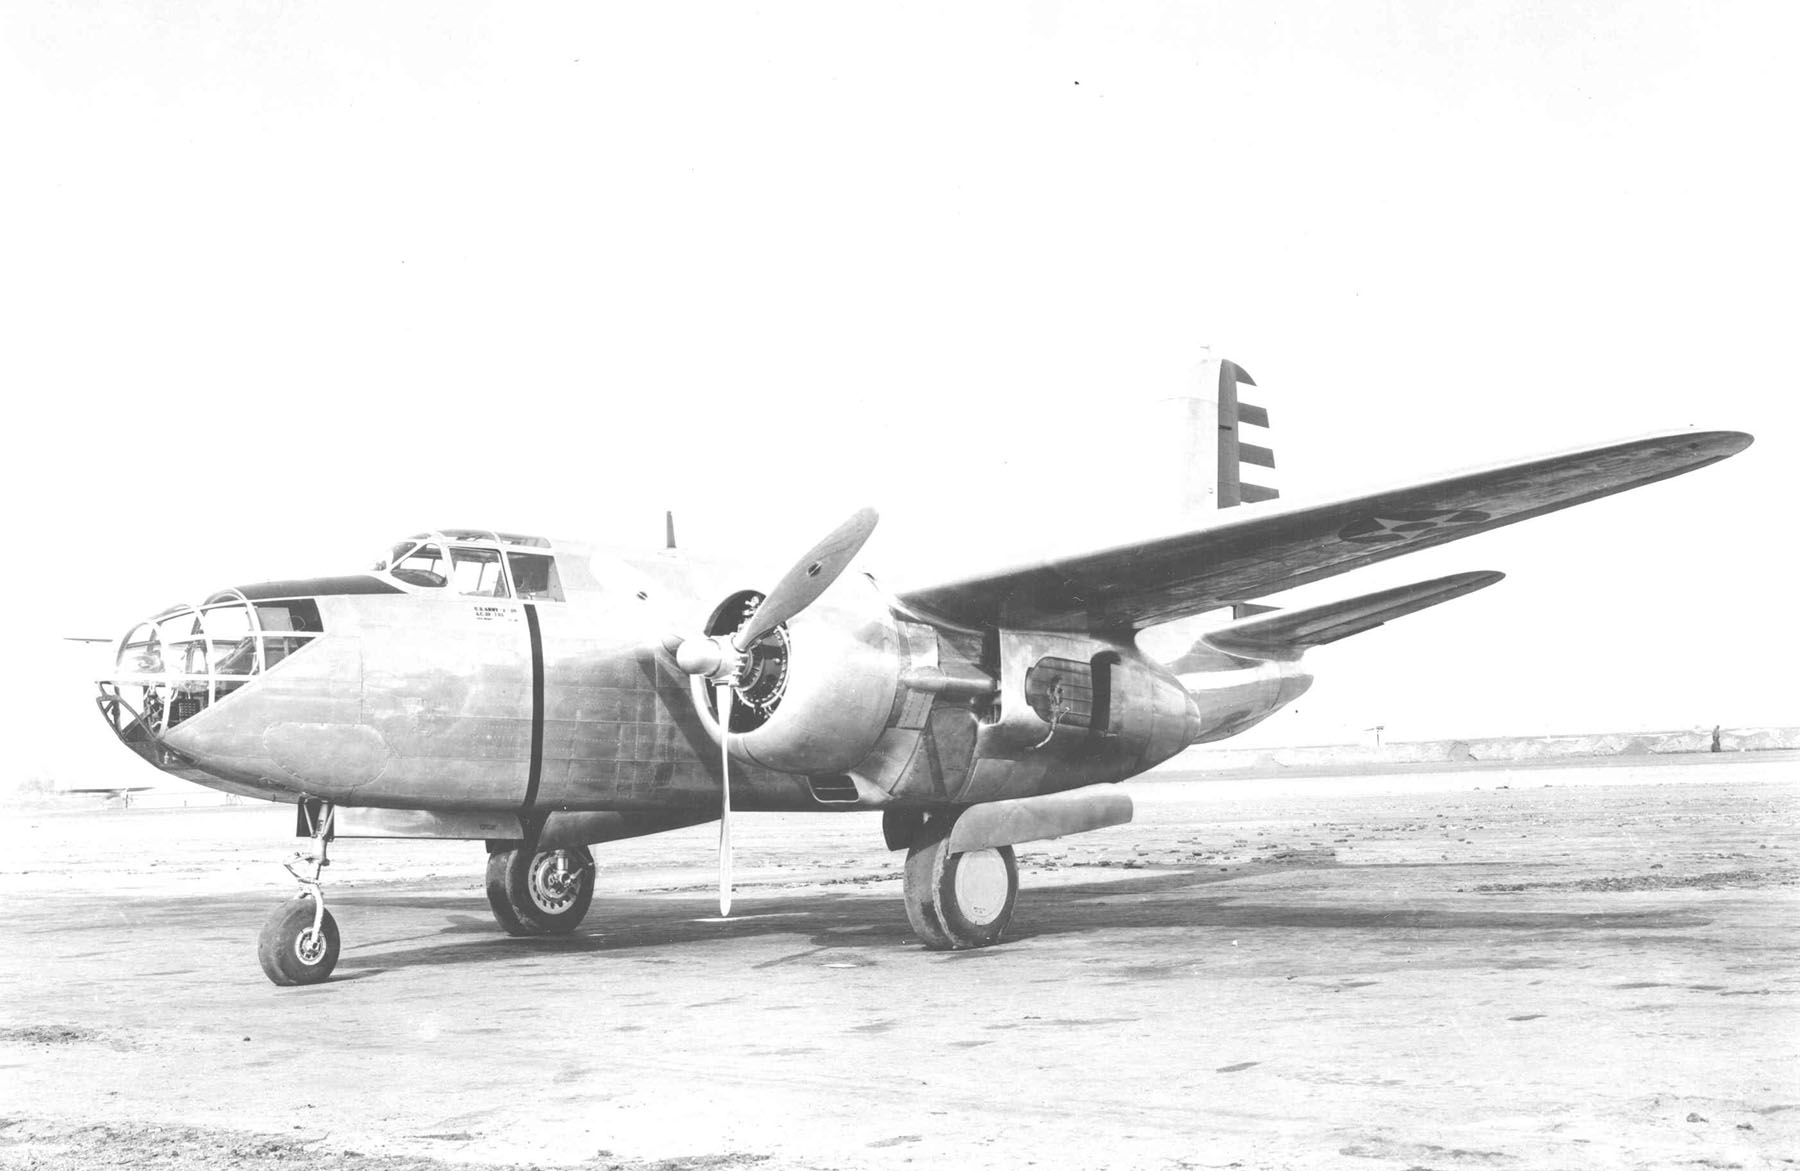 Douglas A-20 Havoc/DB-7 Boston